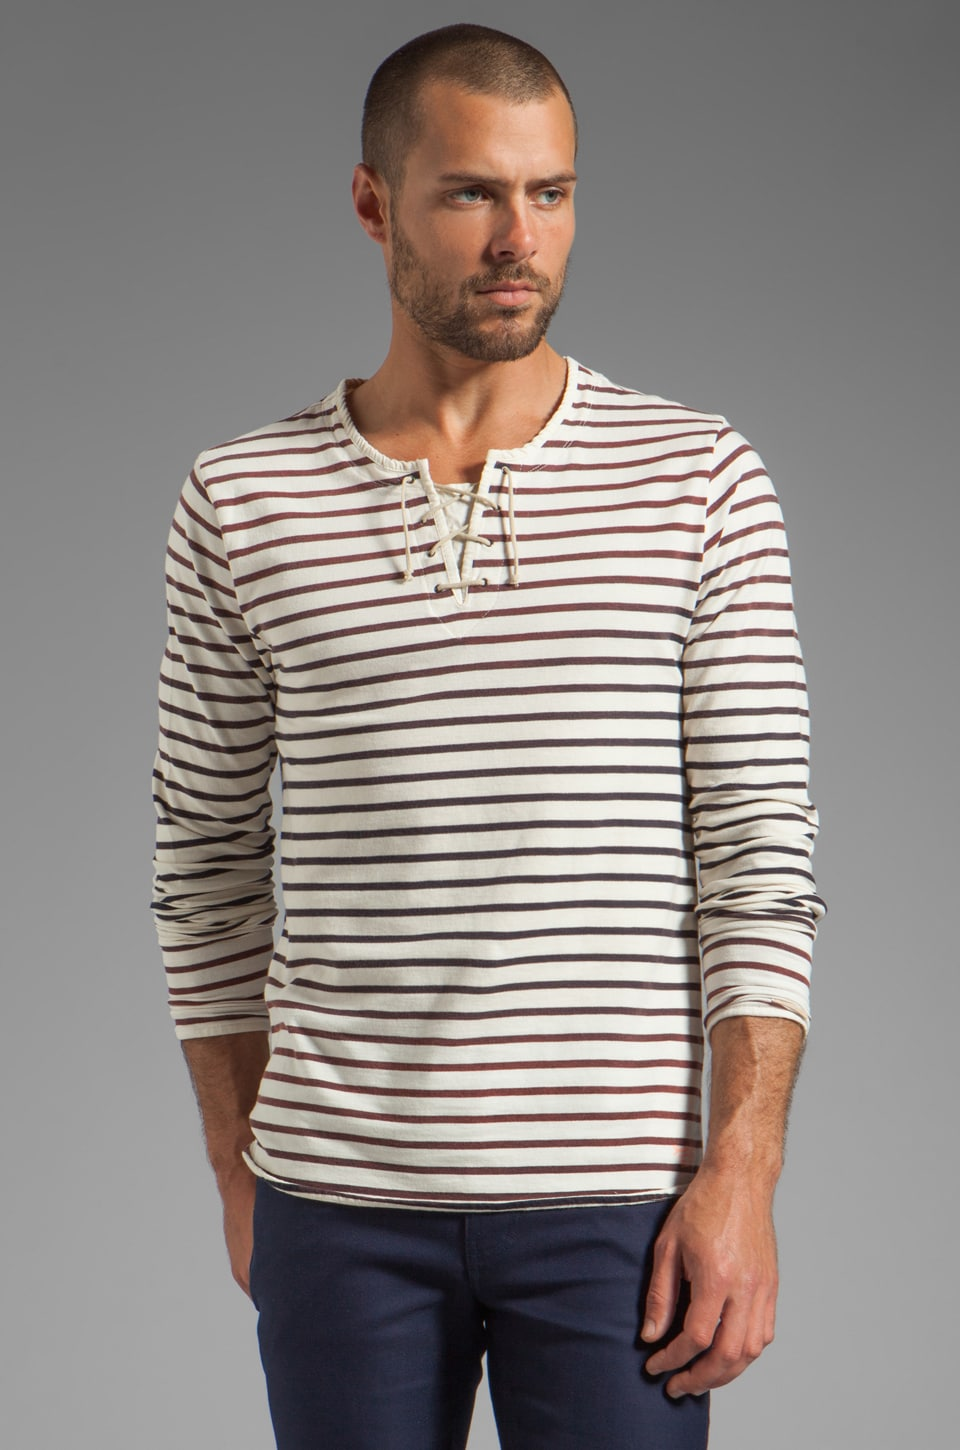 Scotch & Soda Sailor L/S Top w/ Lace Tie Up in White/Navy